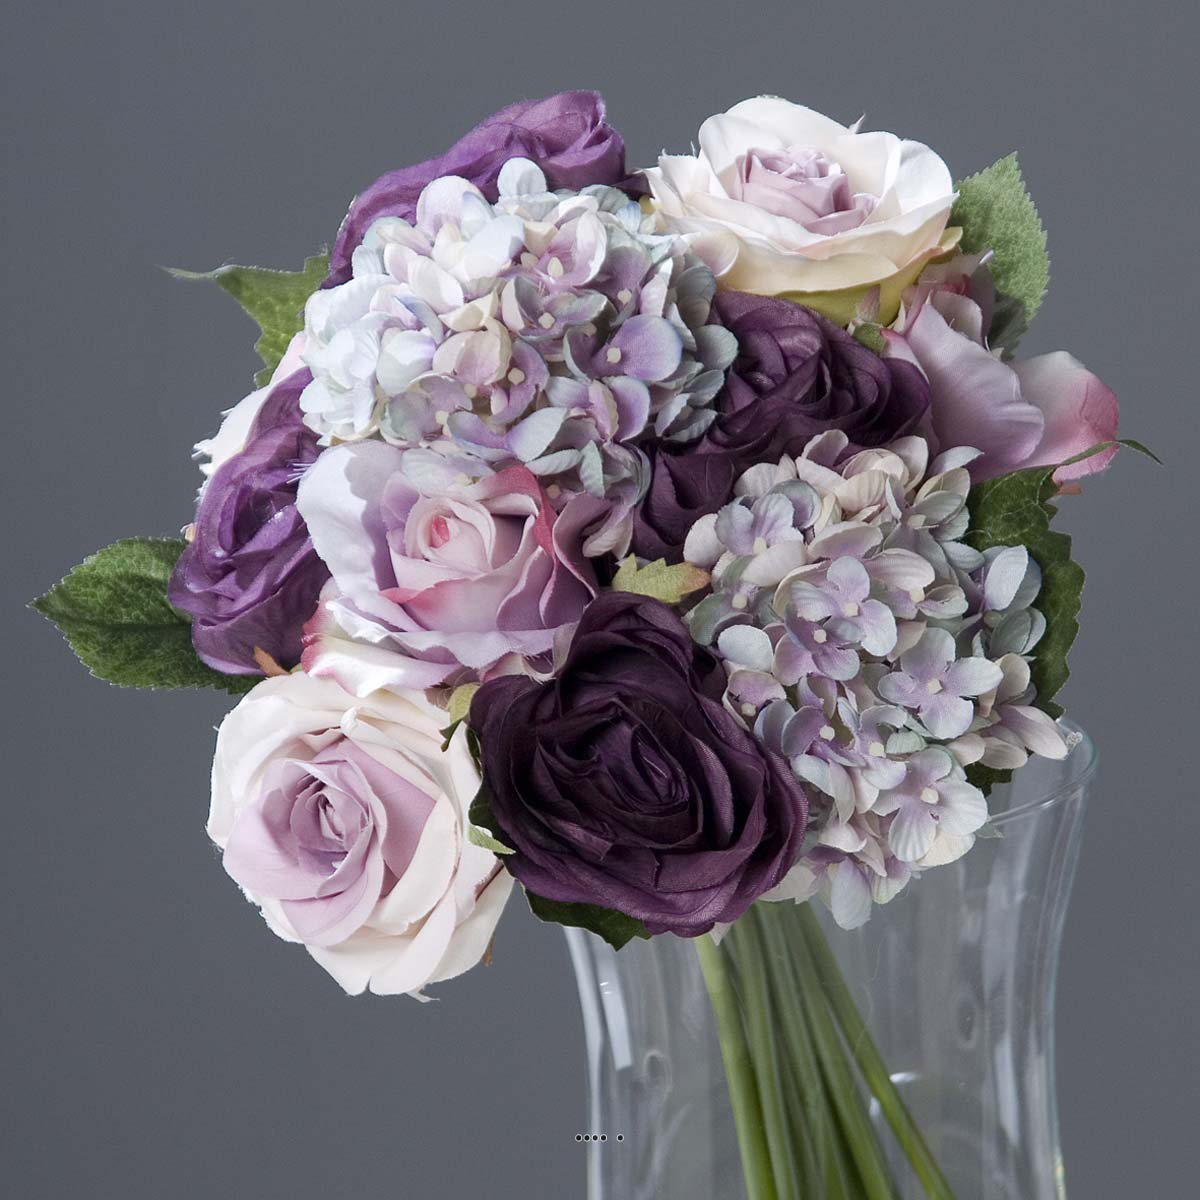 Bouquet de roses et hortensias artificielles 13 t tes d 28 x h 35 cm du site - Bouquet de rose artificielle ...